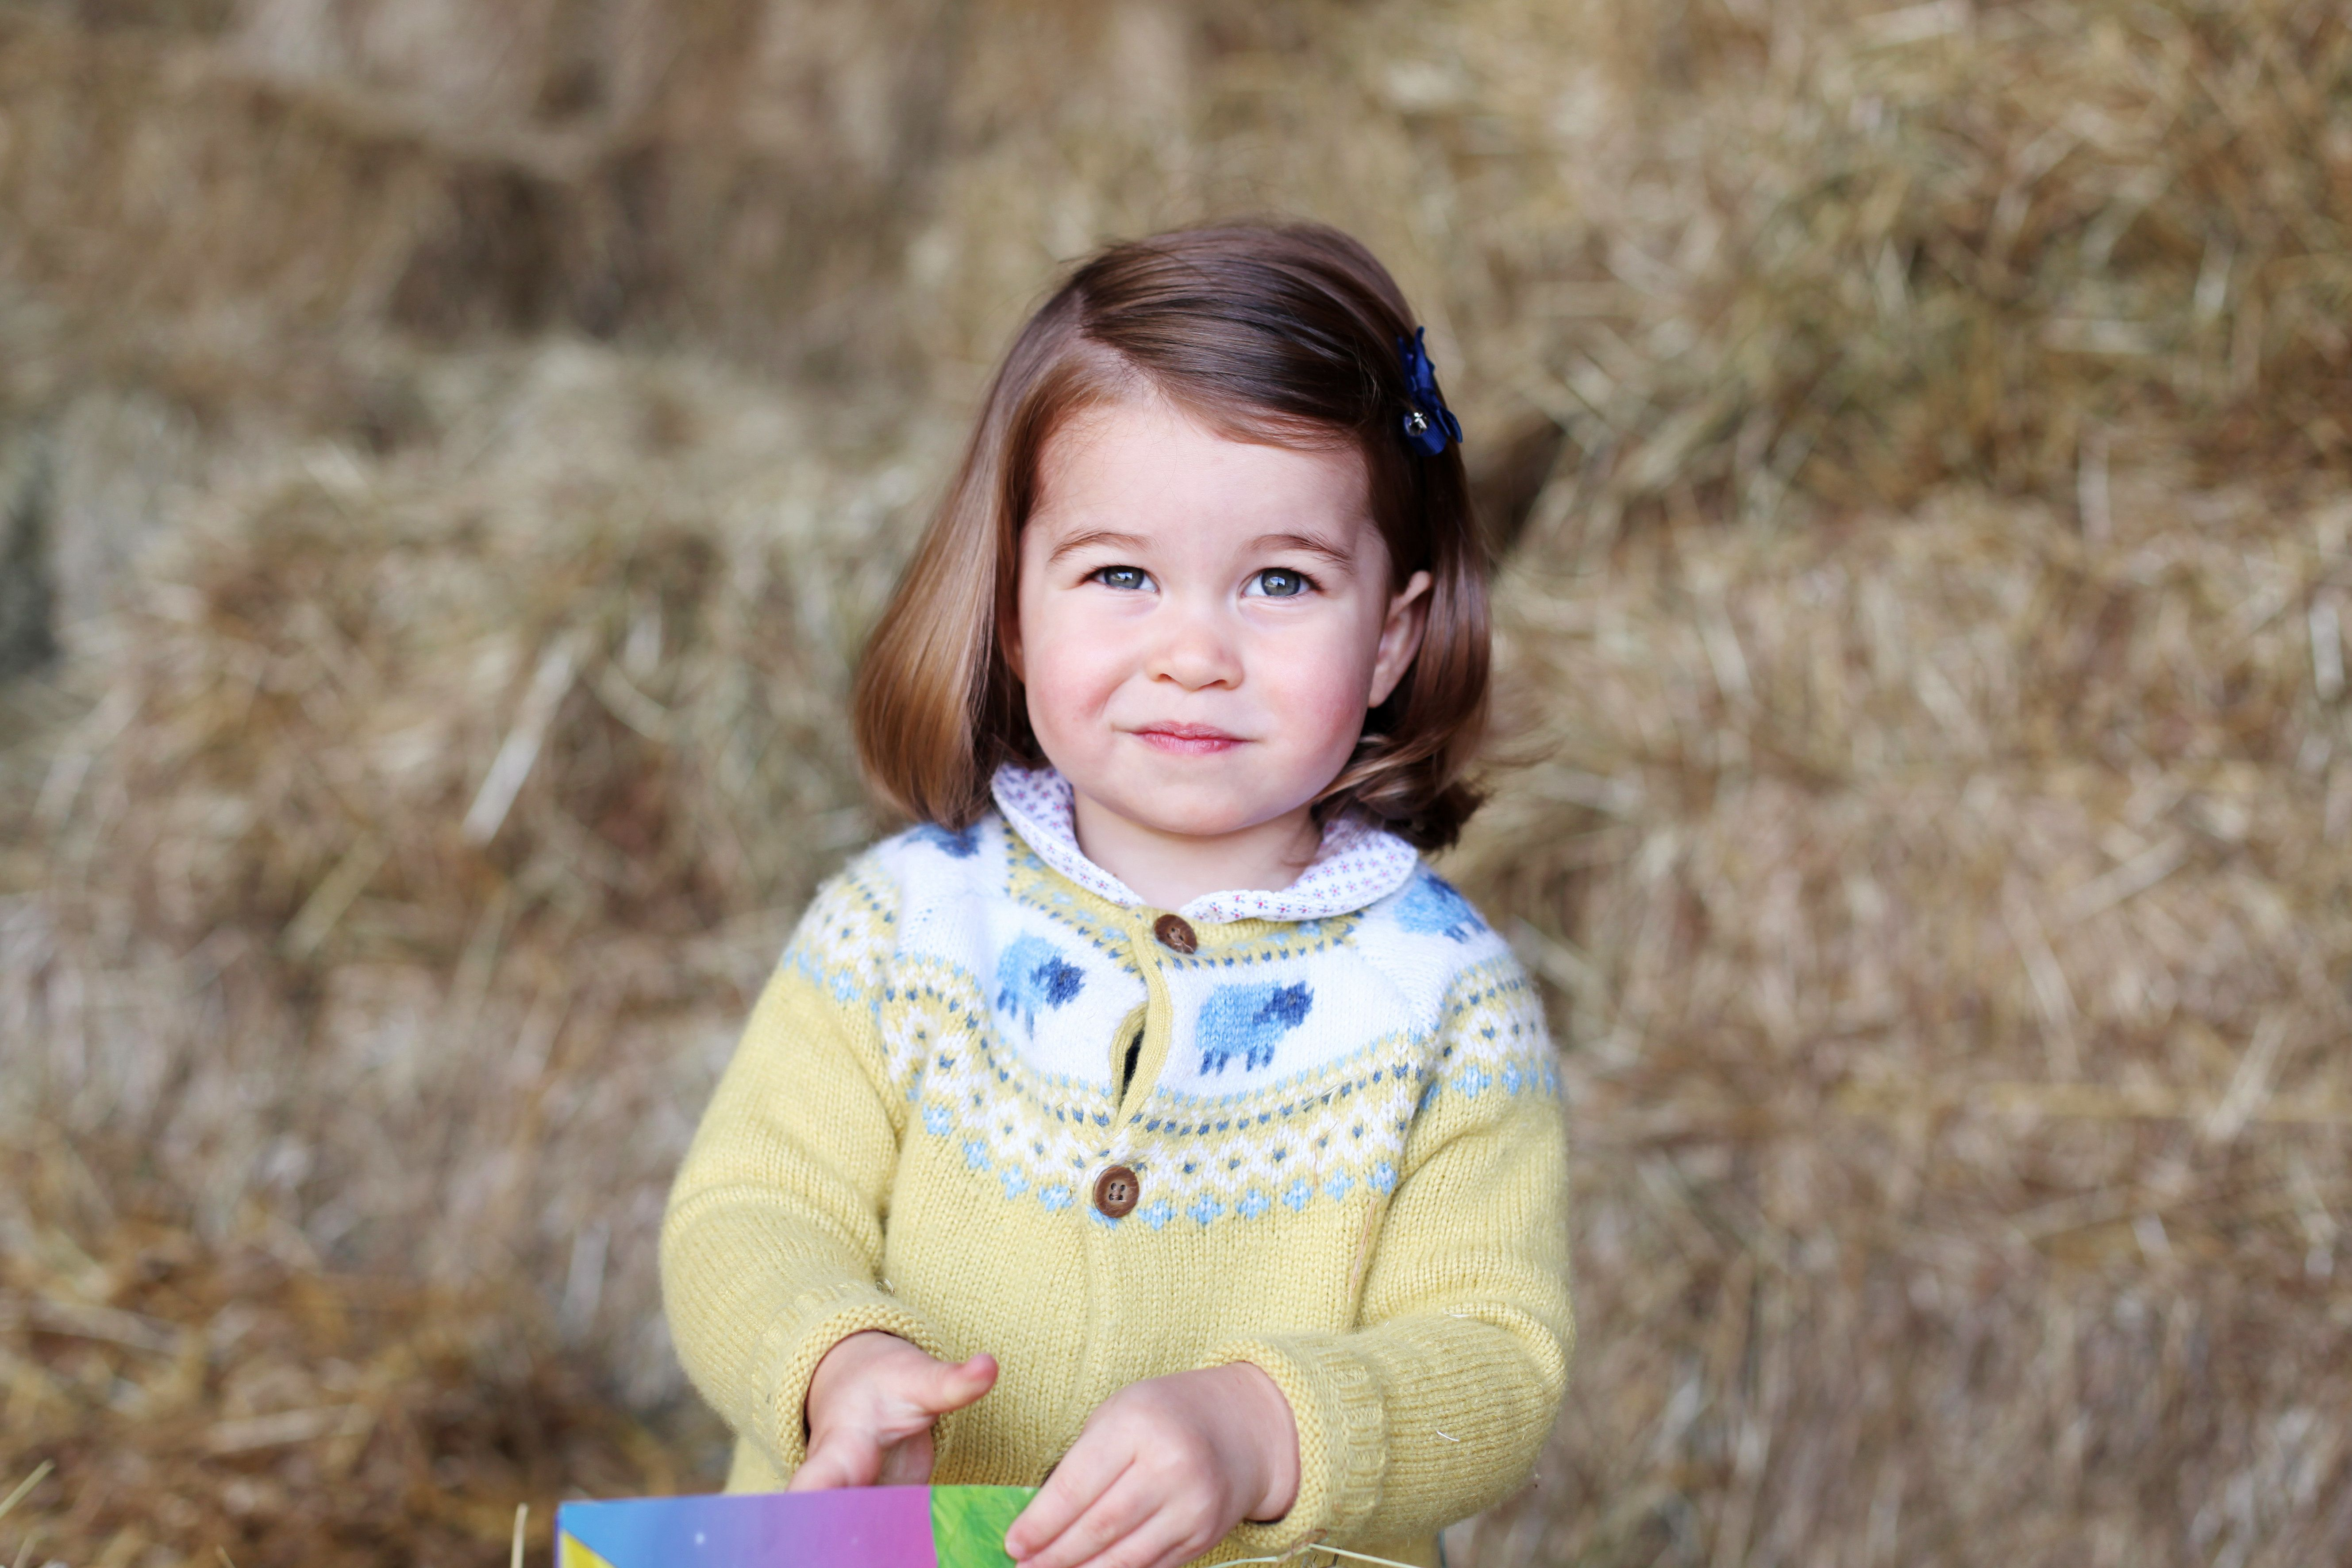 NORFOLK, ENGLAND - APRIL 2017: In this undated handout image released by the Duke and Duchess of Cambridge, Princess Charlotte is pictured at home in April in Norfolk, England. The photograph was taken in April by The Duchess at their home in Norfolk to mark Princess' second birthday. (Photo by HRH The Duchess of Cambridge via Getty Images)  NEWS EDITORIAL USE ONLY. NO COMMERCIAL USE (including any use in merchandising, advertising or any other non-editorial use including, for example, calendars, books and supplements). This photograph is provided to you strictly on condition that you will make no charge for the supply, release or publication of it and that these conditions and restrictions will apply (and that you will pass these on) to any organisation to whom you supply it. All other requests for use should be directed to the Press Office at Kensington Palace in writing.  NOTE TO EDITORS: This handout photo may only be used in for editorial reporting purposes for the contemporaneous illustration of events, things or the people in the image or facts mentioned in the caption. Reuse of the picture may require further permission from the copyright holder.